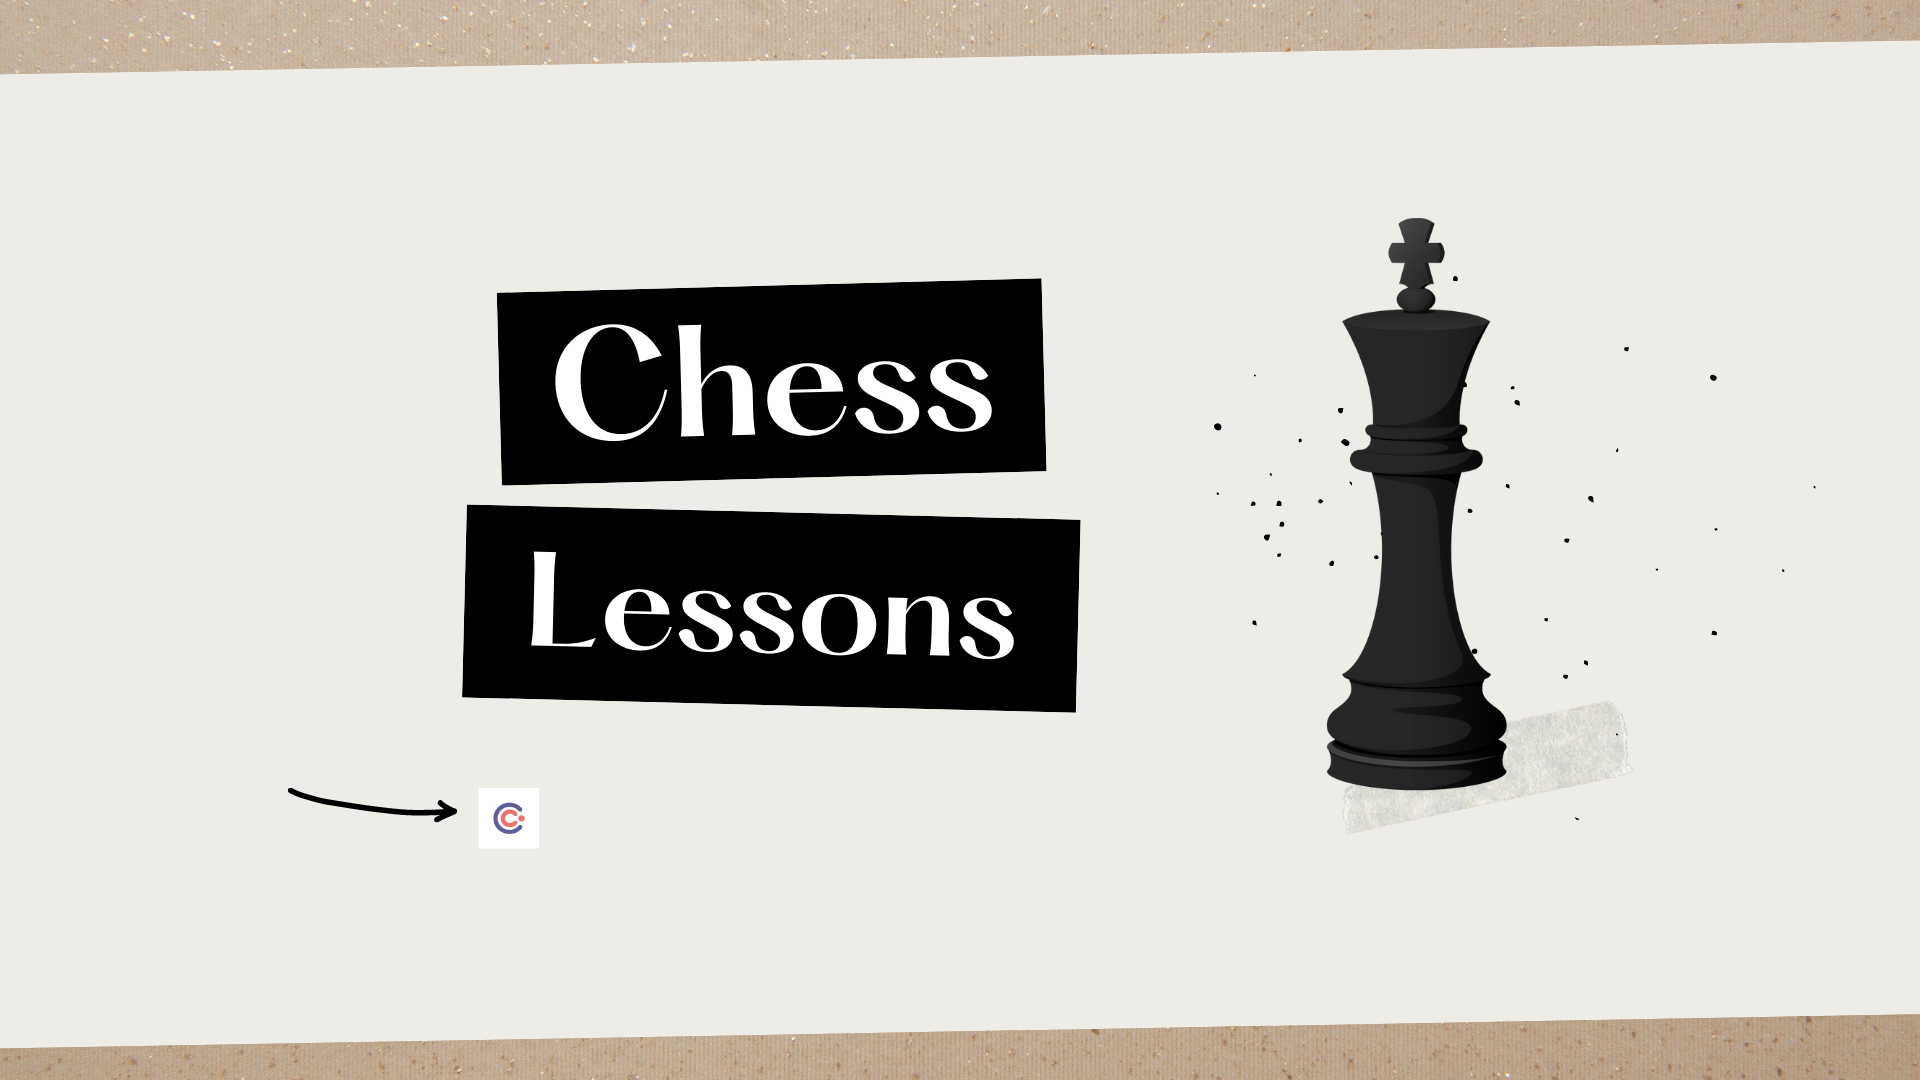 5 Best Chess Lessons and Training - Learn Chess Online